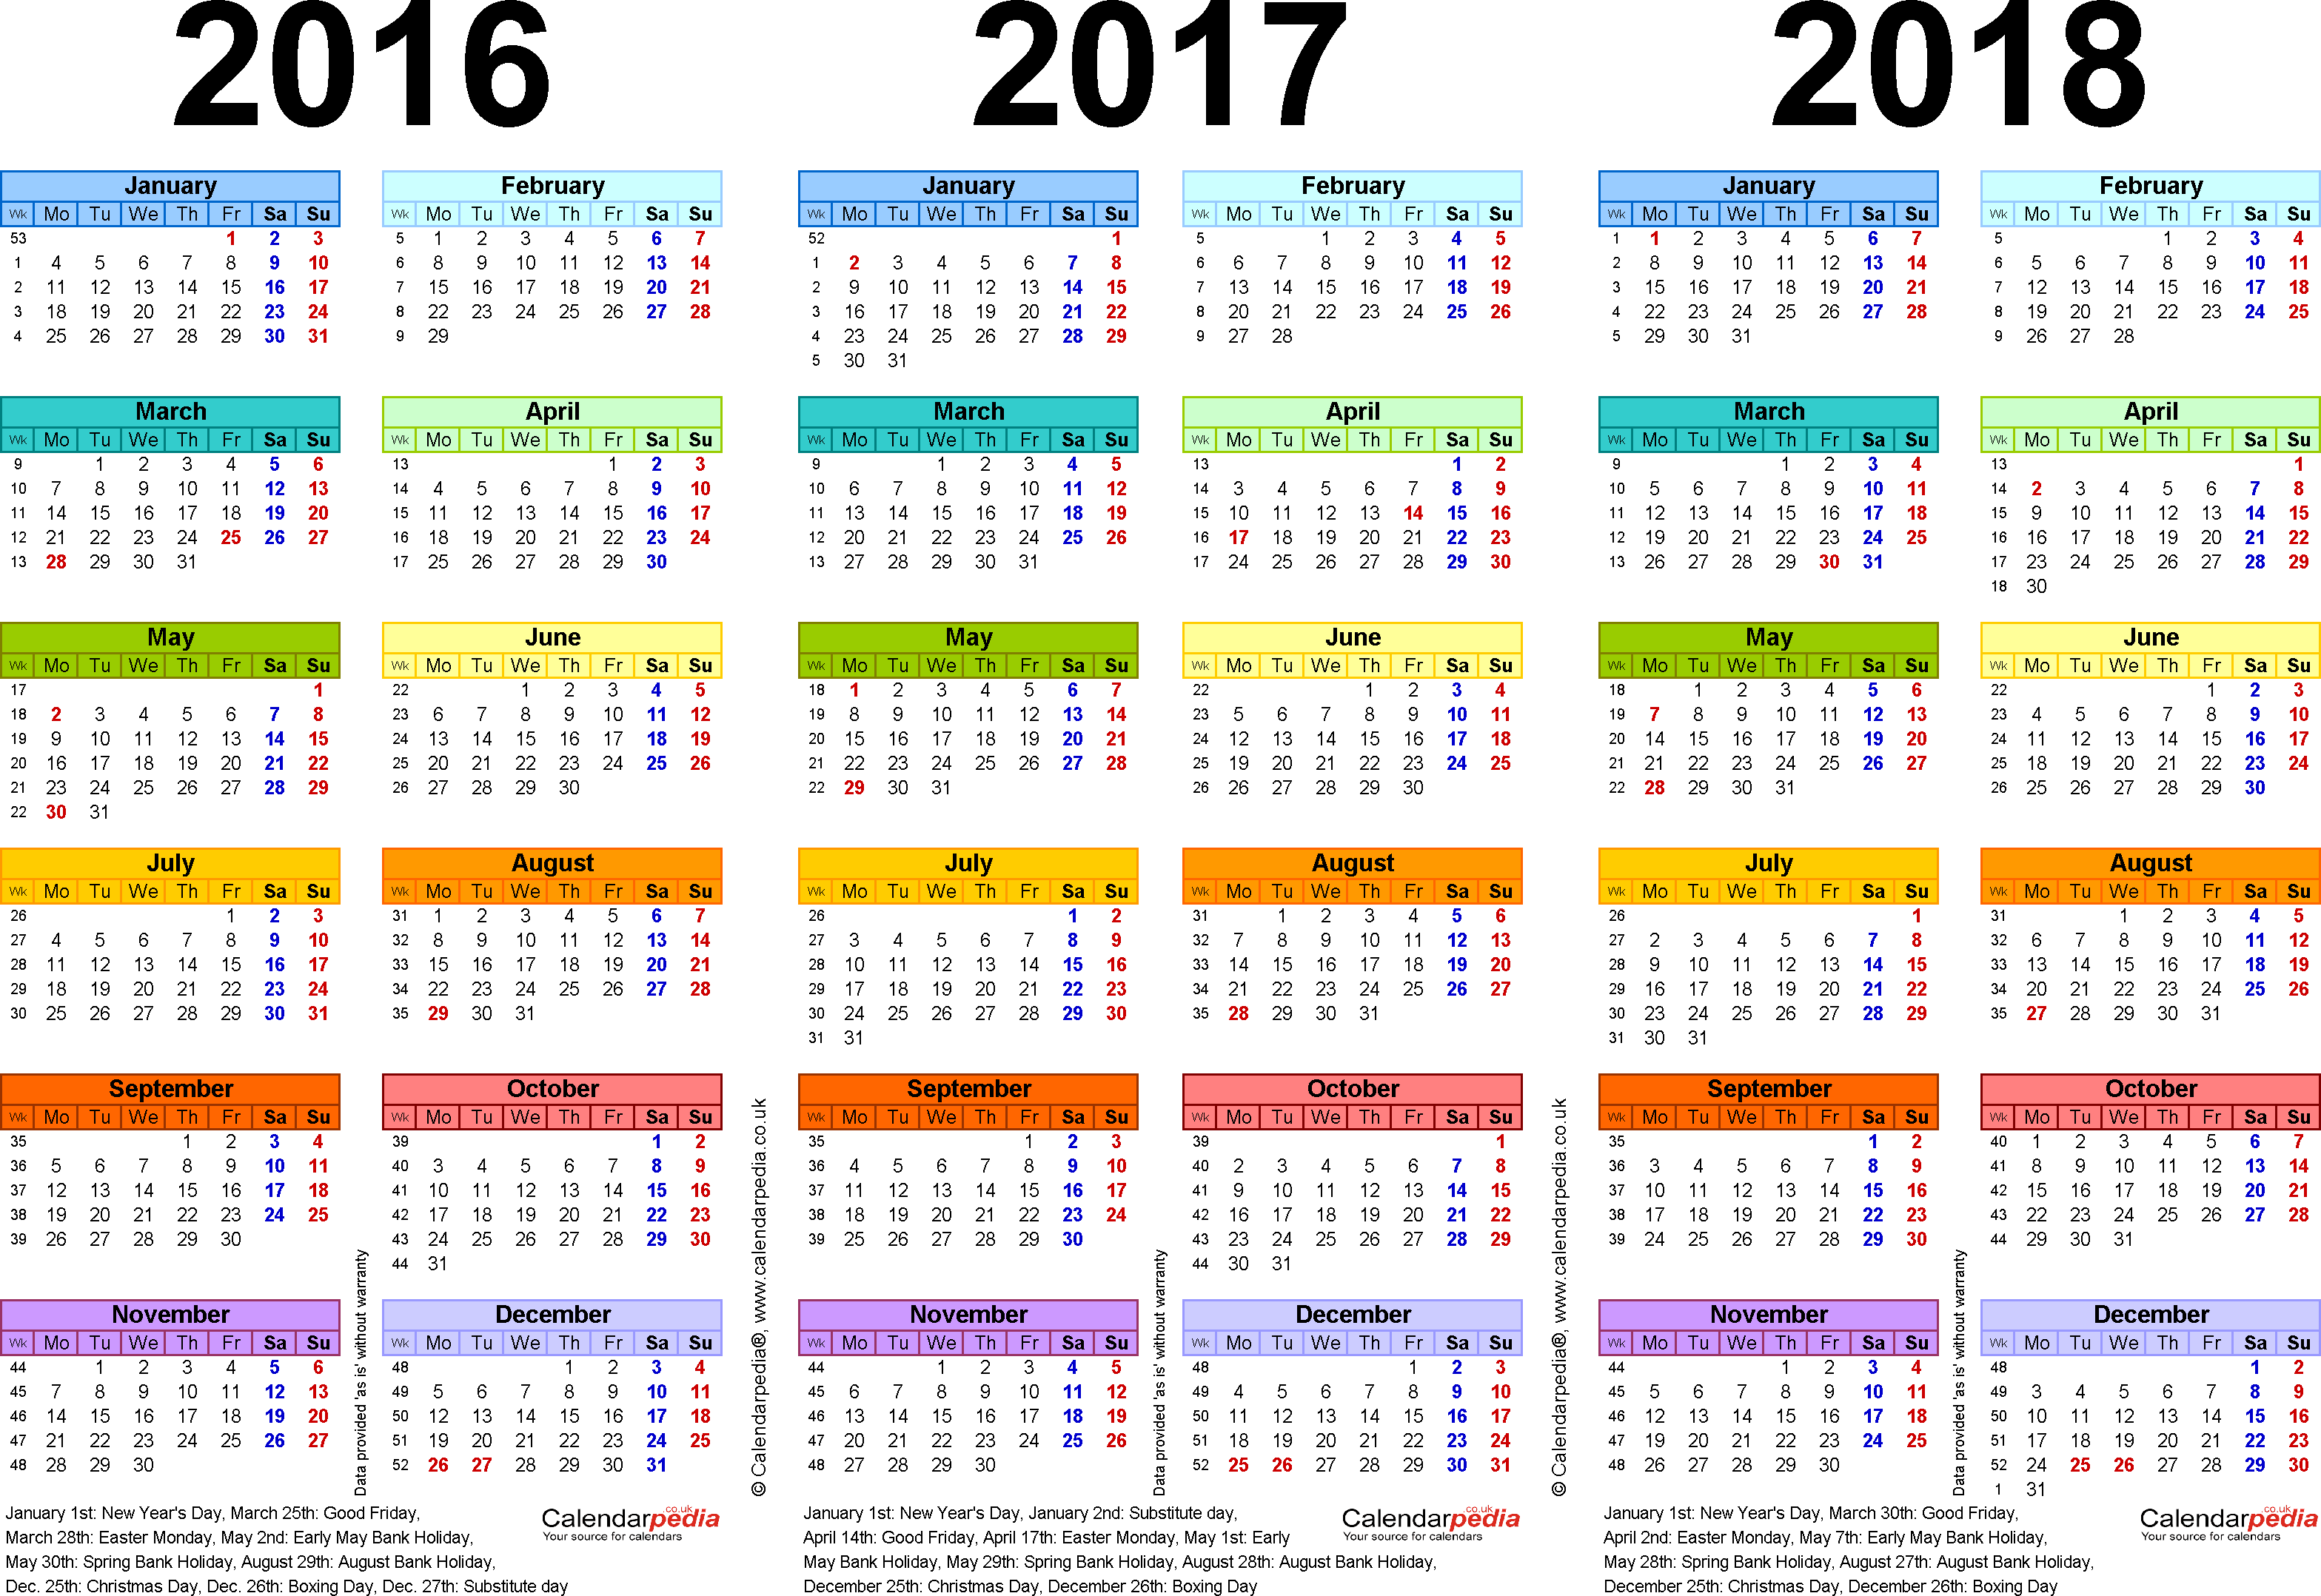 Template 1: PDF template for three year calendar 2016/2017/2018 in colour (landscape orientation, 1 page, A4)